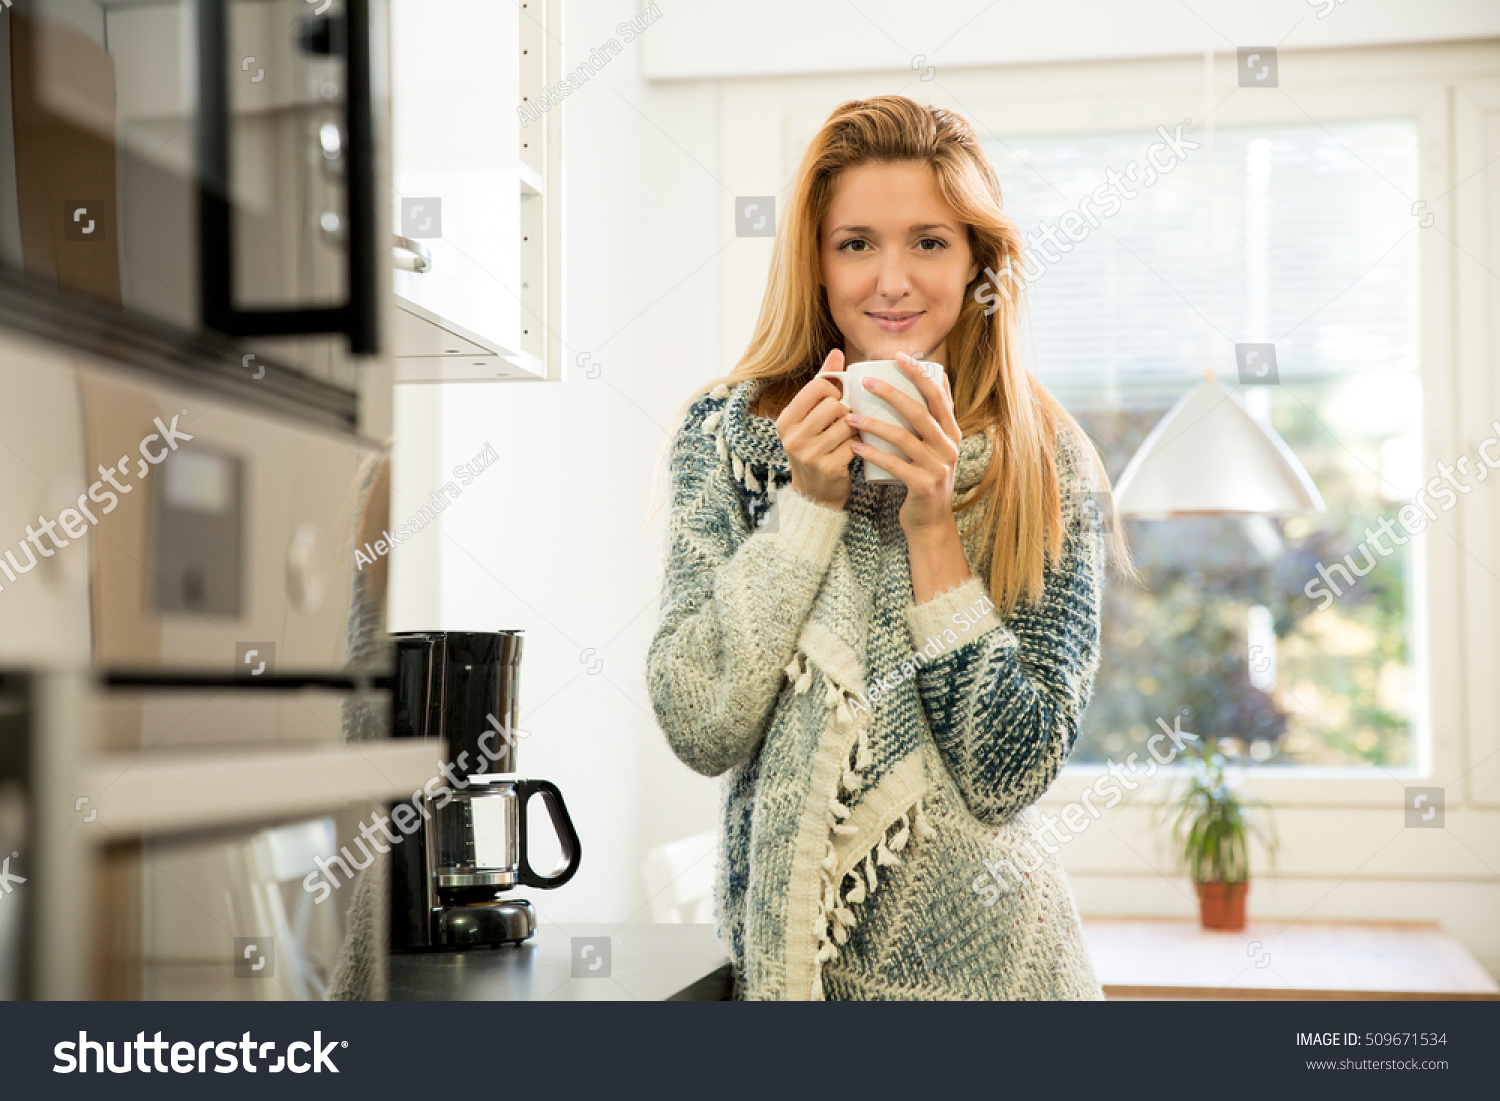 Woman Holding Cup Hot Coffee Hands Stock Photo 509671534 - Shutterstock